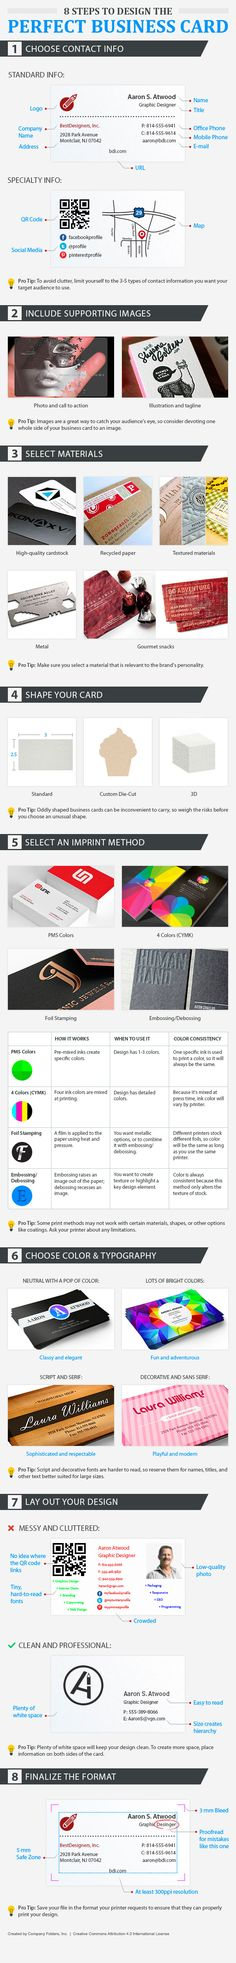 Infographic: Tips To Design The Perfect Business Card